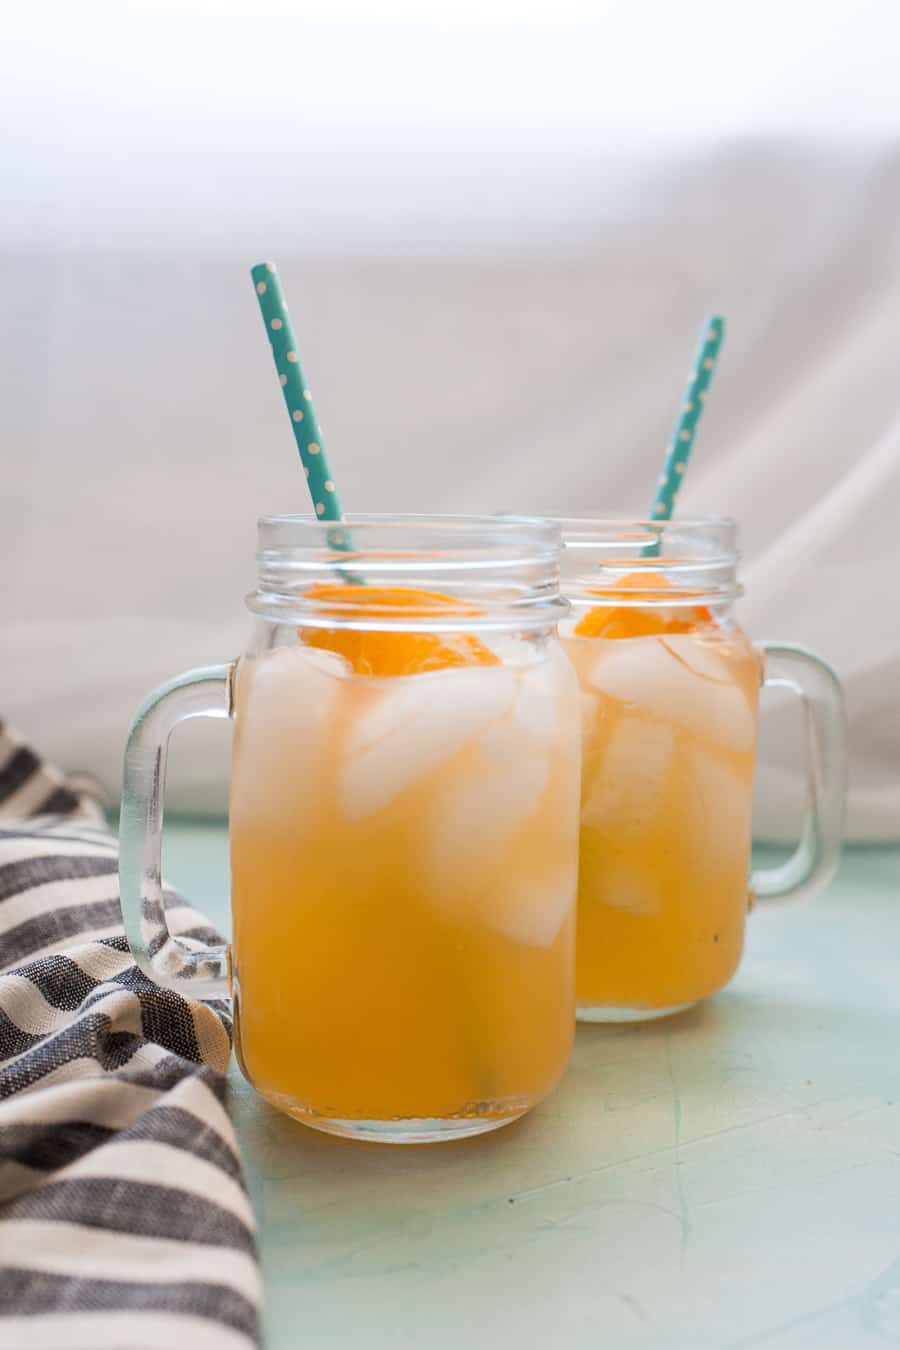 Nothing says summer like a tall glass of Honey Orange Lemonade! This lemonade variation is naturally sweetened with a quick honey simple syrup and made with freshly squeezed oranges and lemons. Celebrate the warmer weather with a refreshing glass of Honey Orange Lemonade!